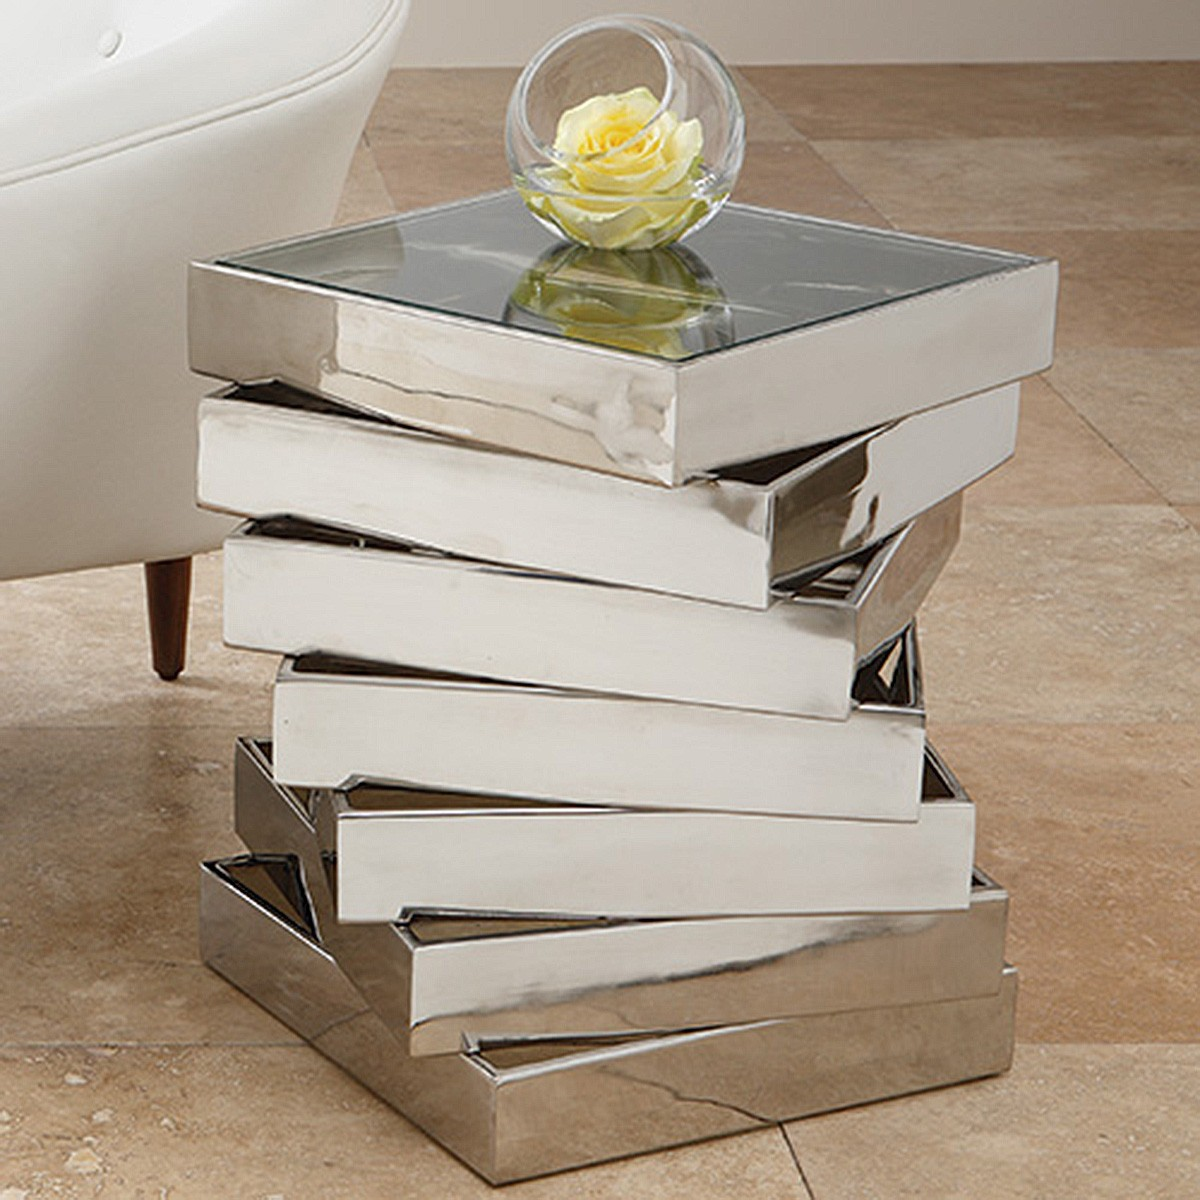 Small coffee table design images photos pictures for Unusual tables